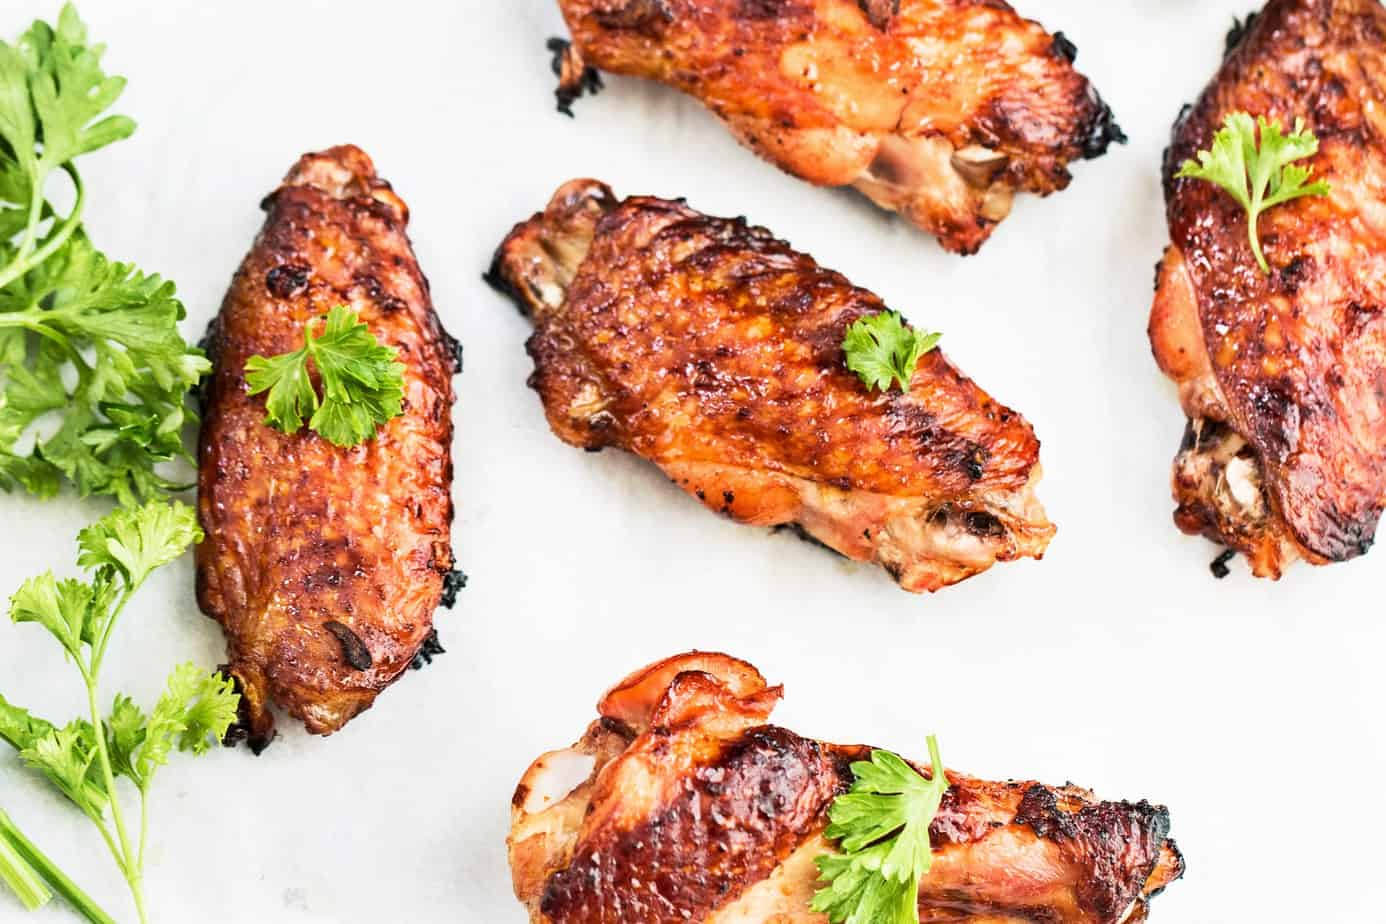 Five Spice Ginger- Soy Glaze Chicken Wings